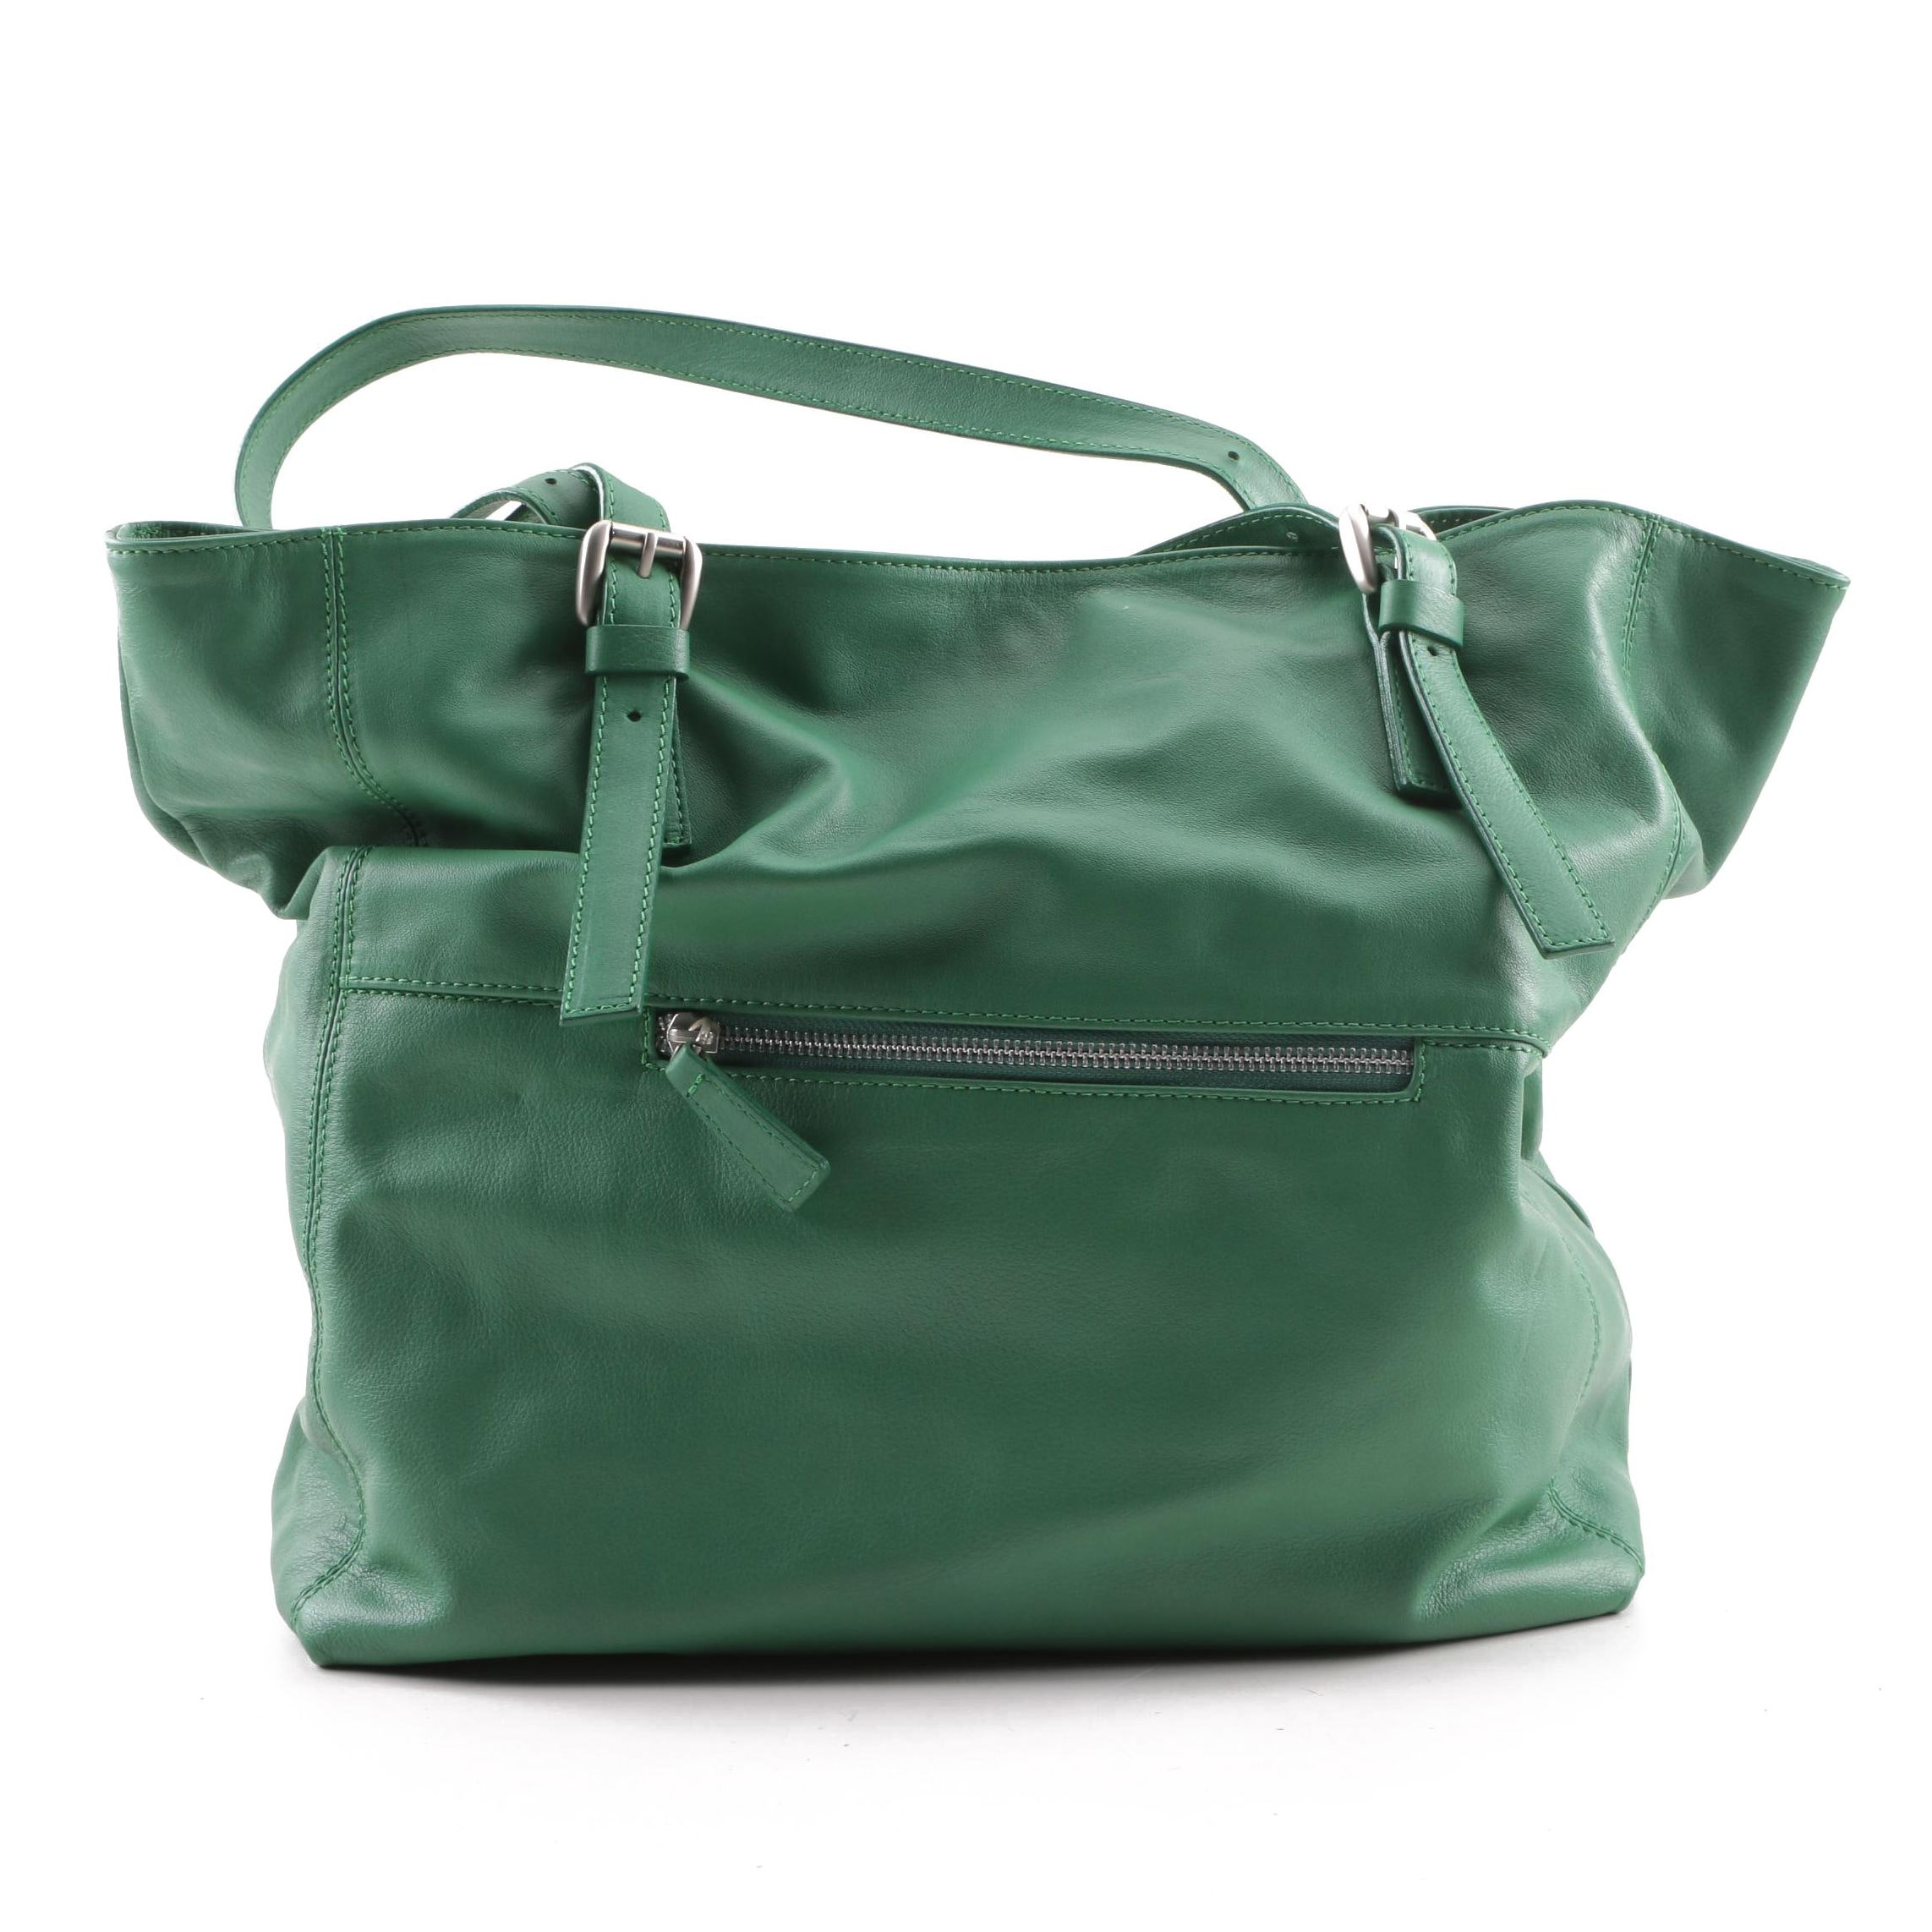 Garnet Hill Green Leather Tote Bag